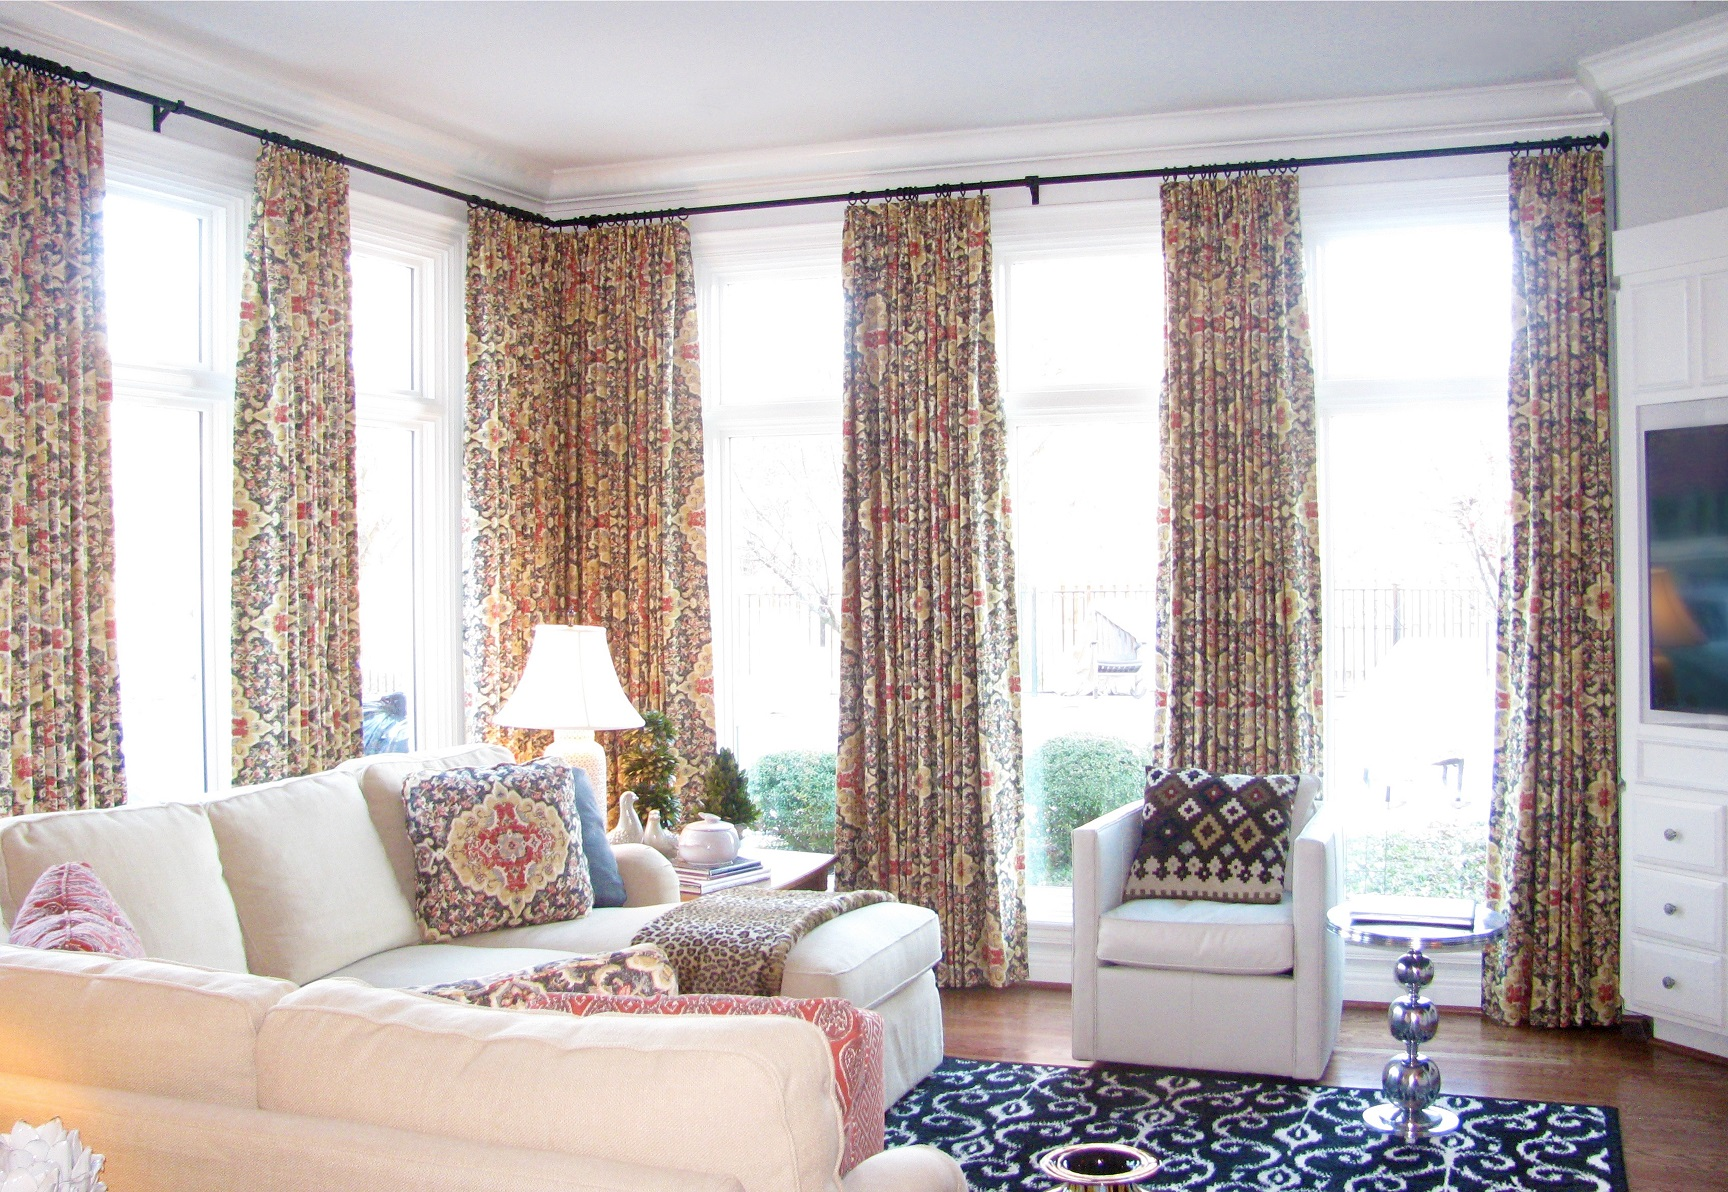 custom window treatments drapery roman shades valances slip covers northwest arkansas 3.jpg